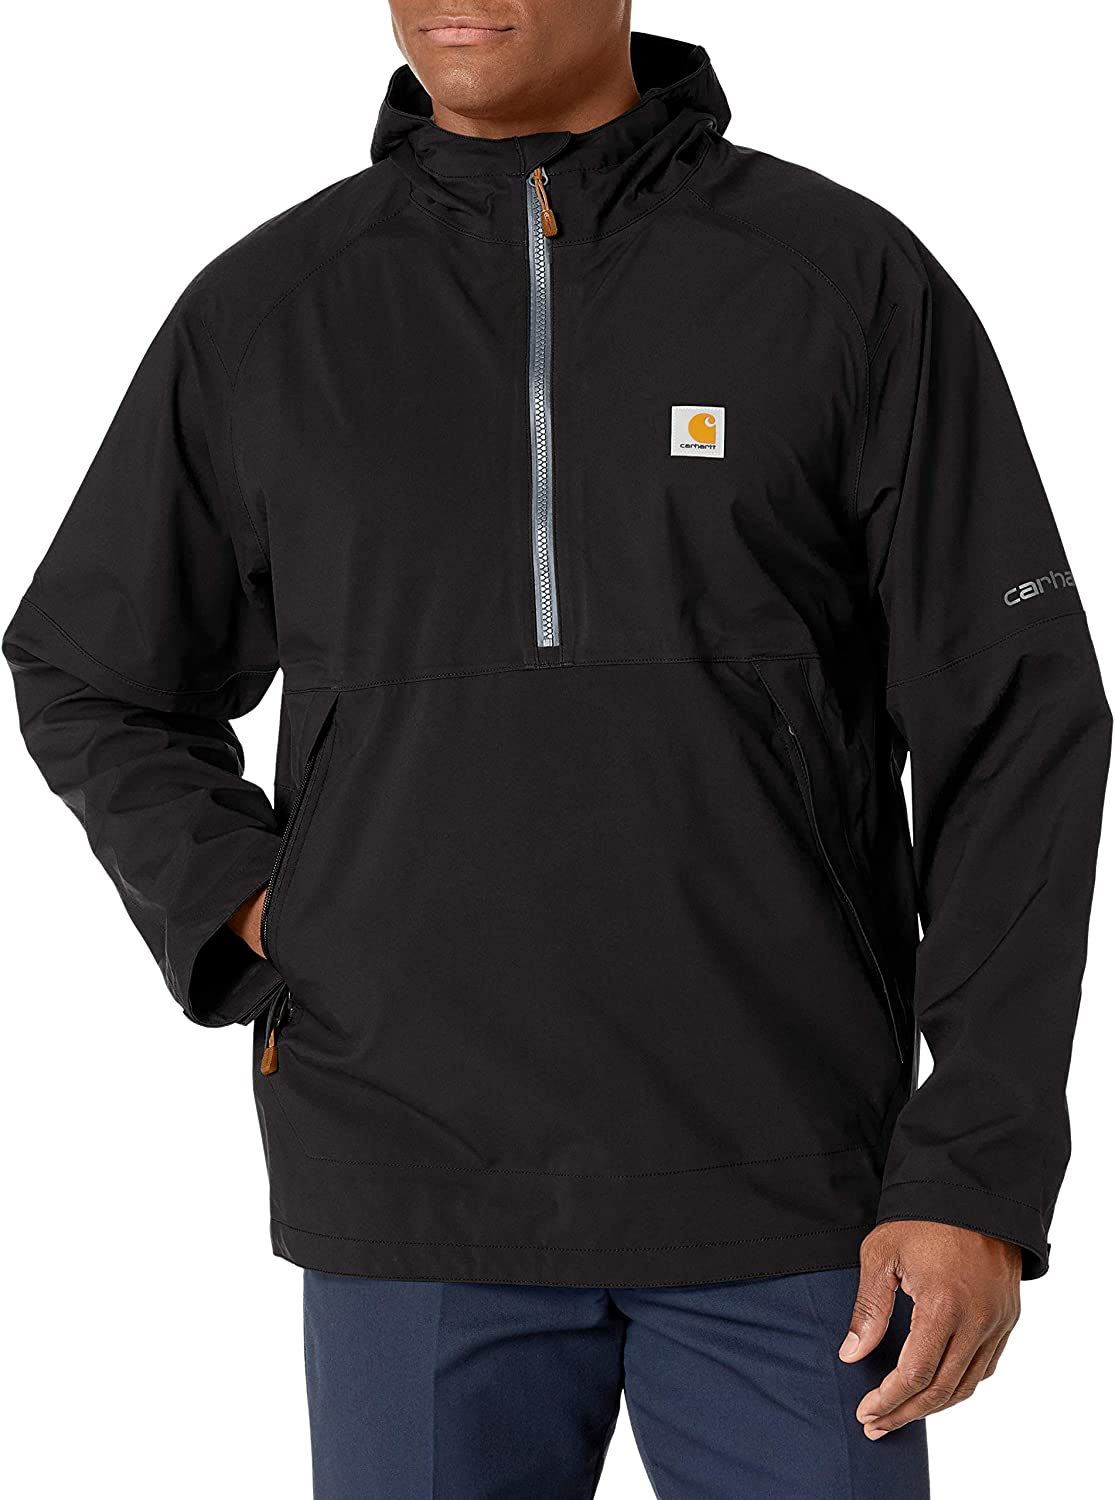 Carhartt Mens Storm Defender Force Midweight Hooded Anorak Jacket Work Utility Outerwear